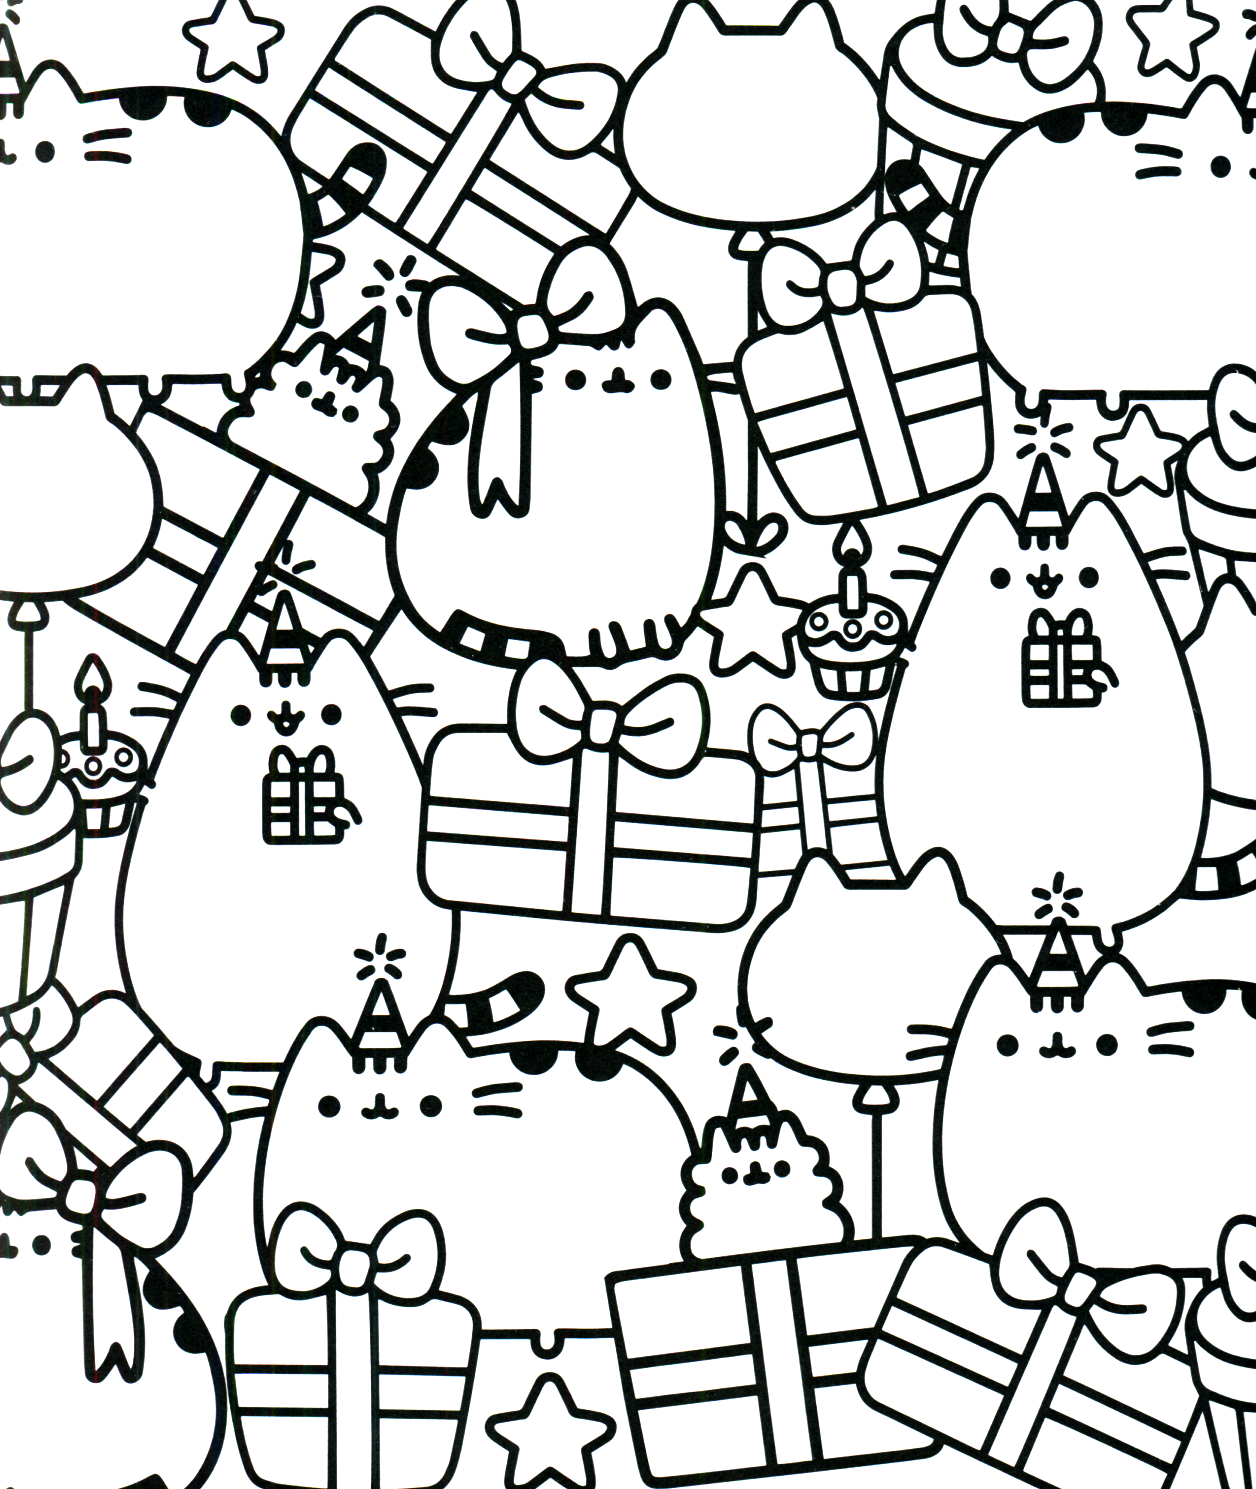 Pusheen Coloring Book Pusheen Pusheen The Cat Pusheen Coloring Pages Cat Coloring Page Cute Coloring Pages